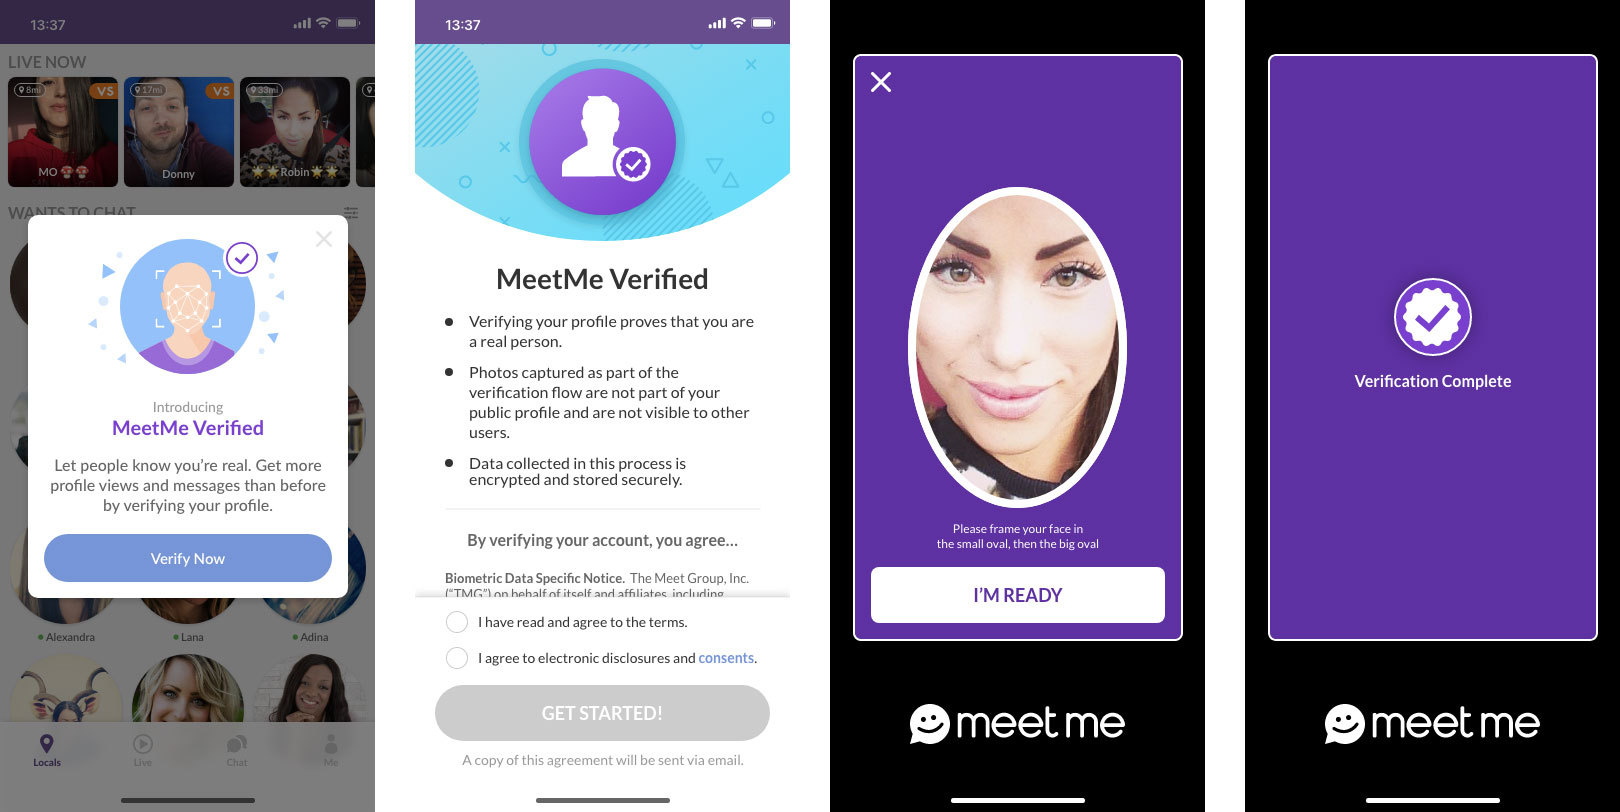 In age to meetme app your change MeetMe